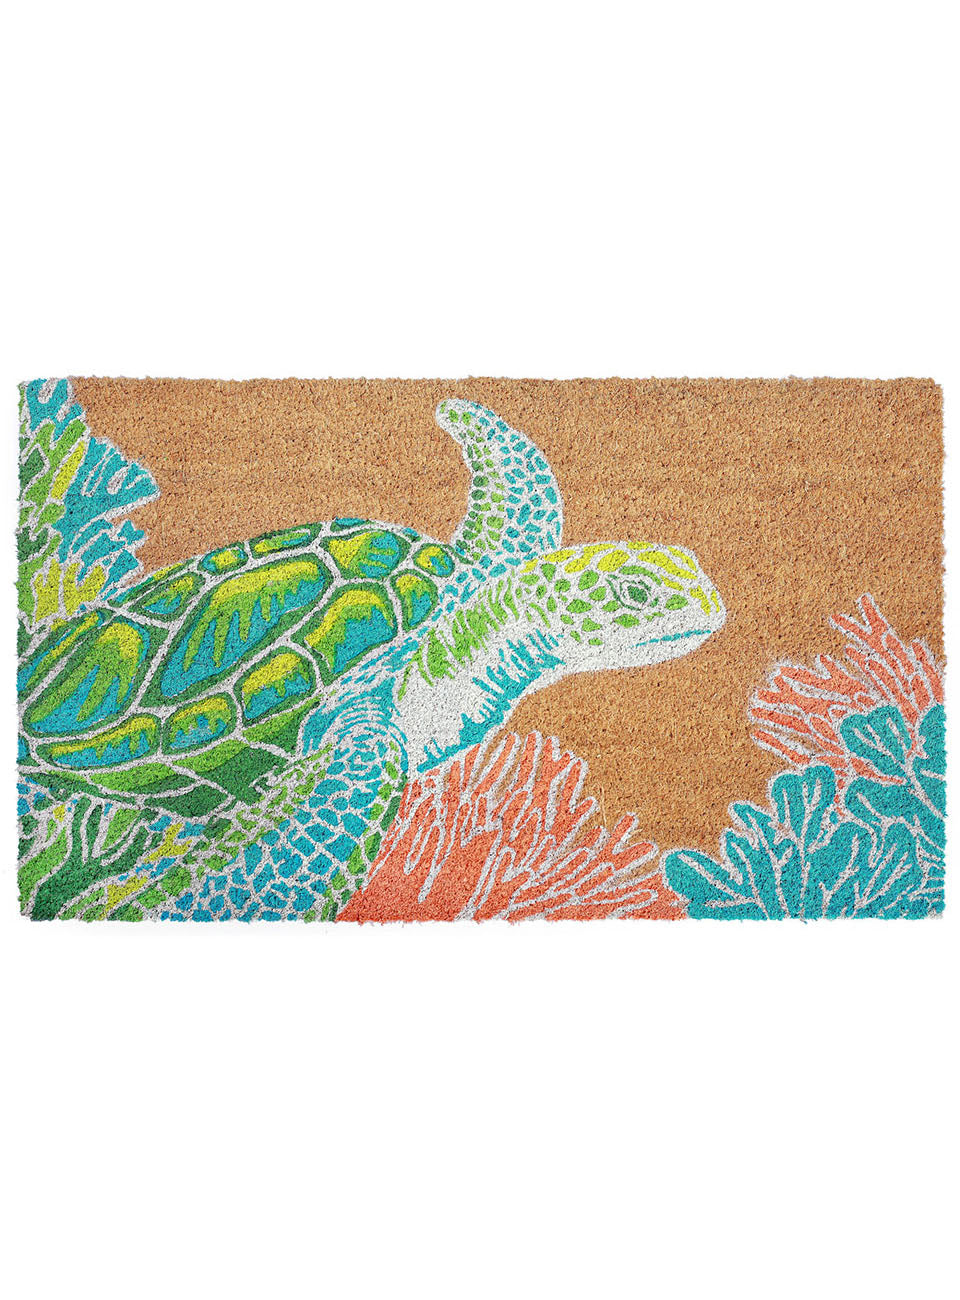 Sea Turtle Splendor Natural Door Mat 30x18Home Womens Apparel Mermaid Life